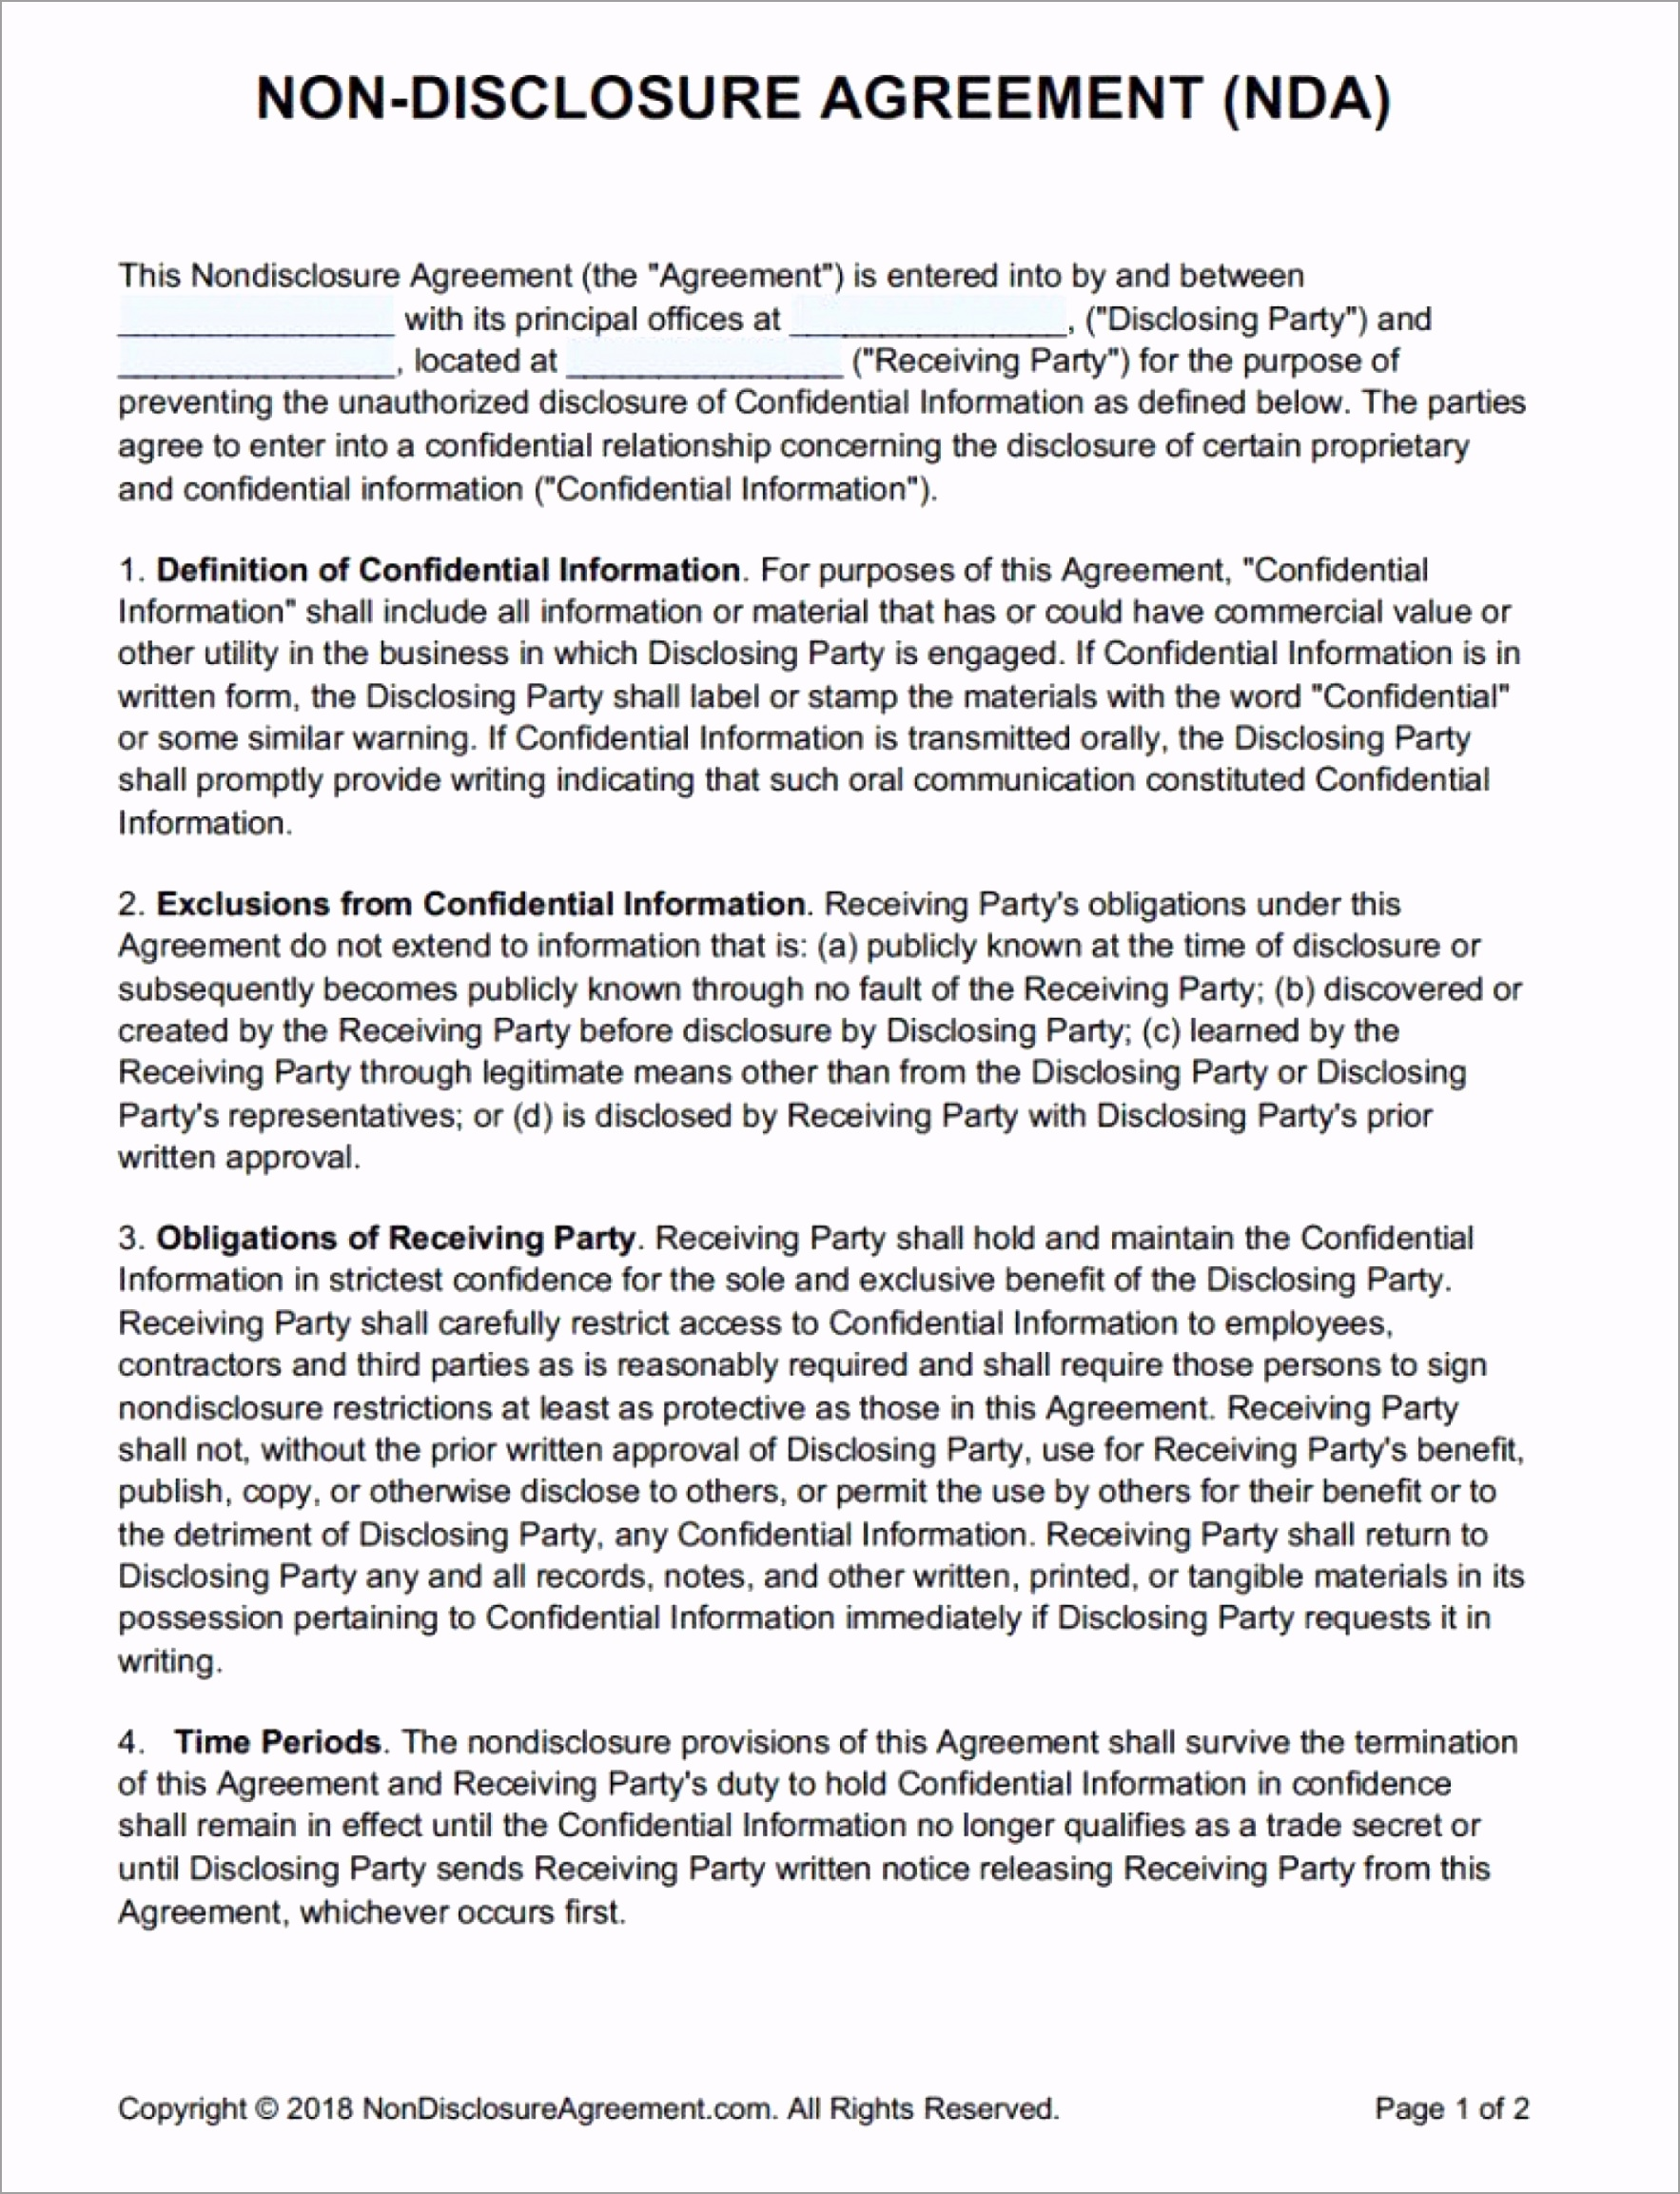 001 archaicawful confidentiality agreement template free image 1920 2508 otuto